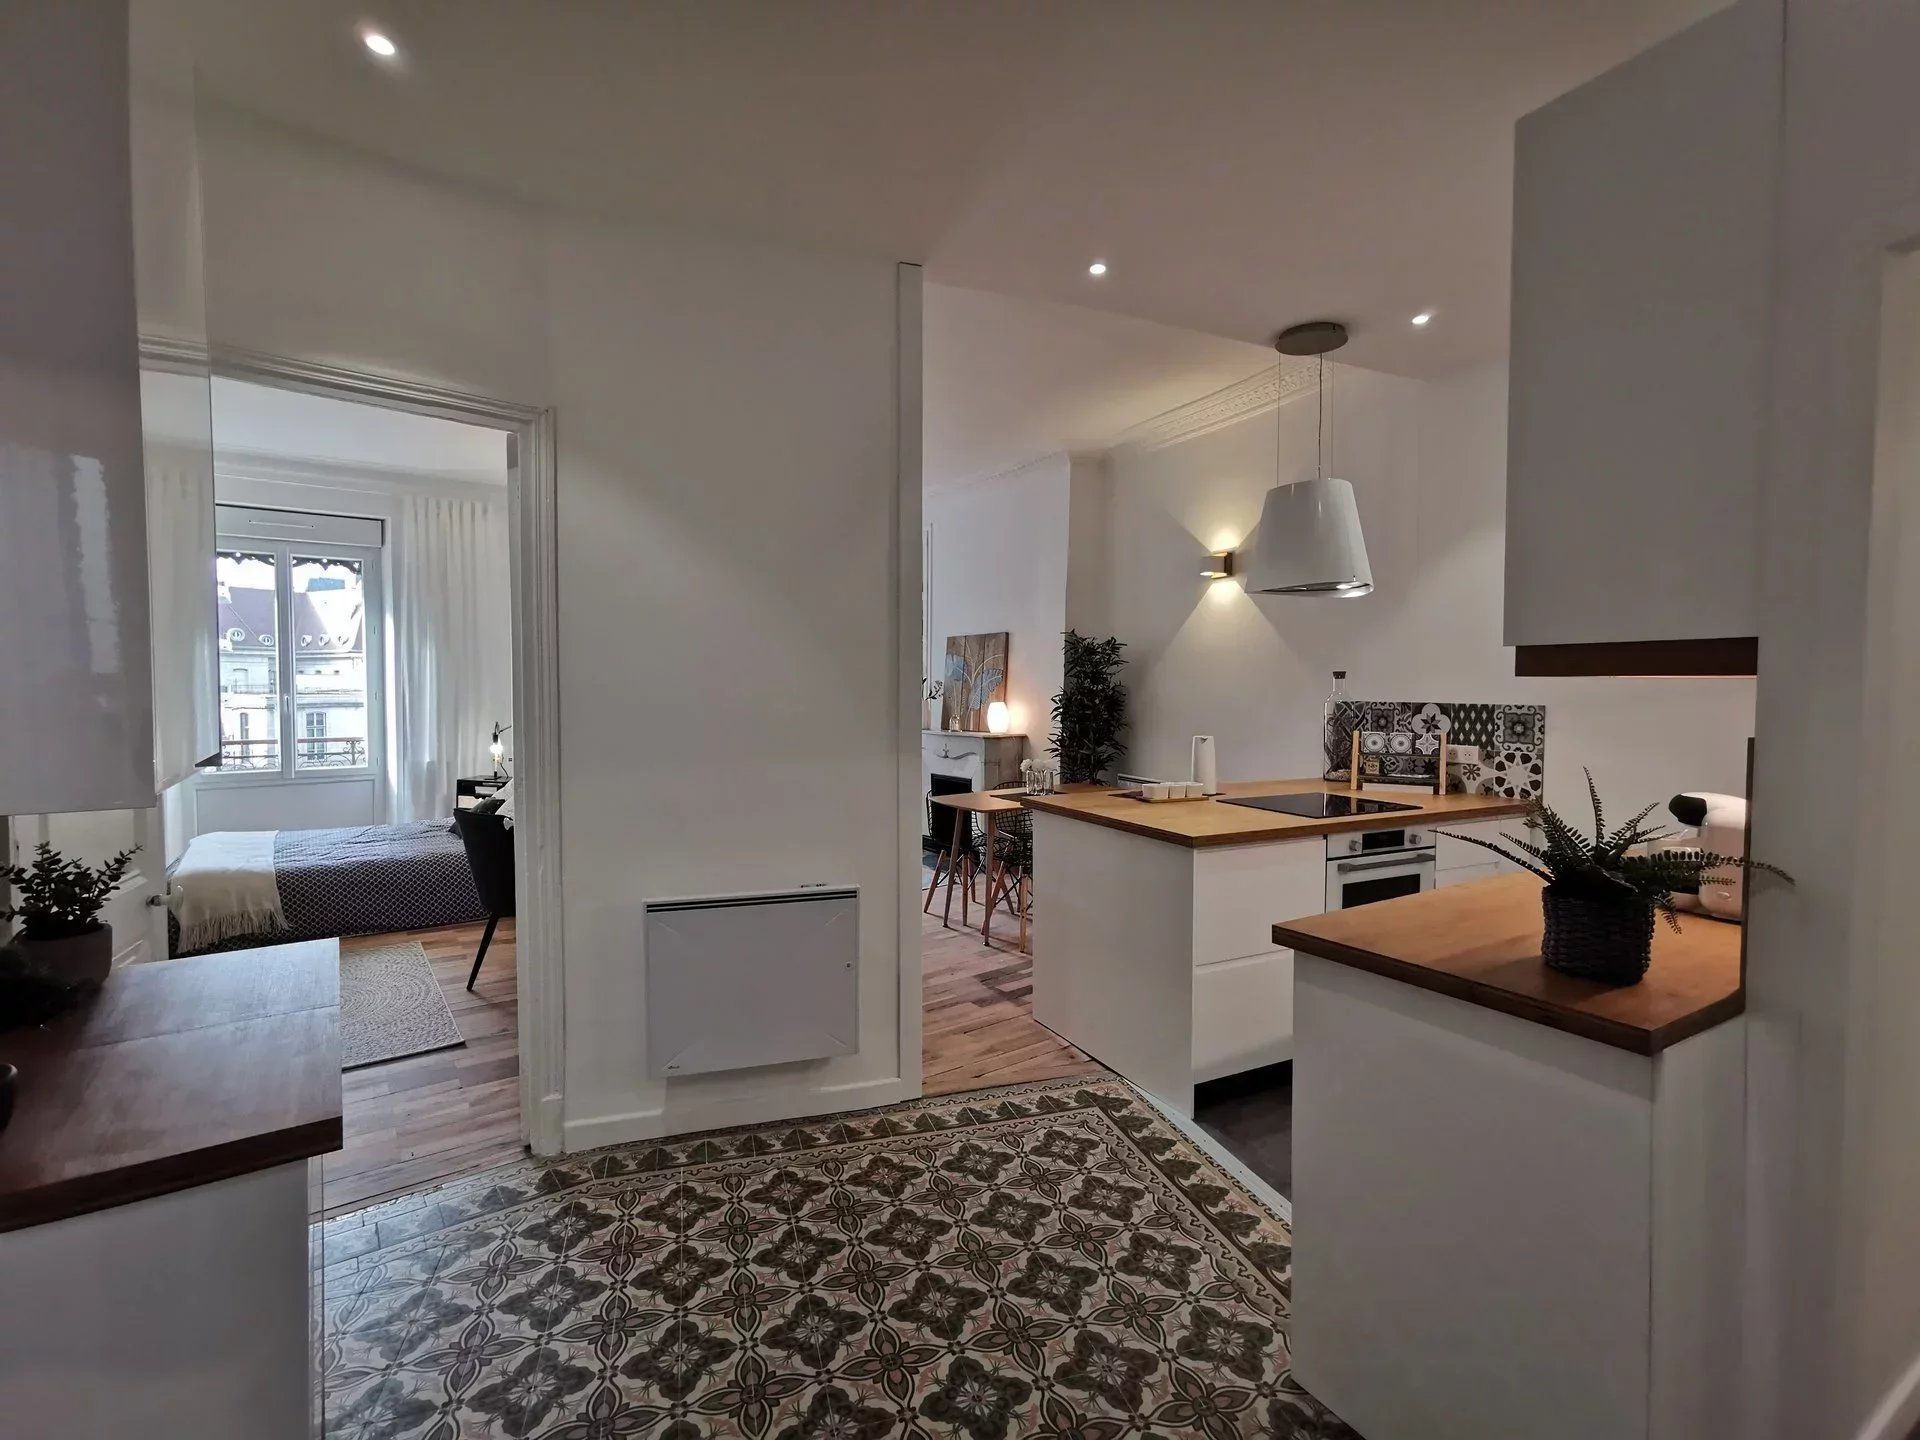 Large 61,97m², one bedroom apartment in central Grenoble